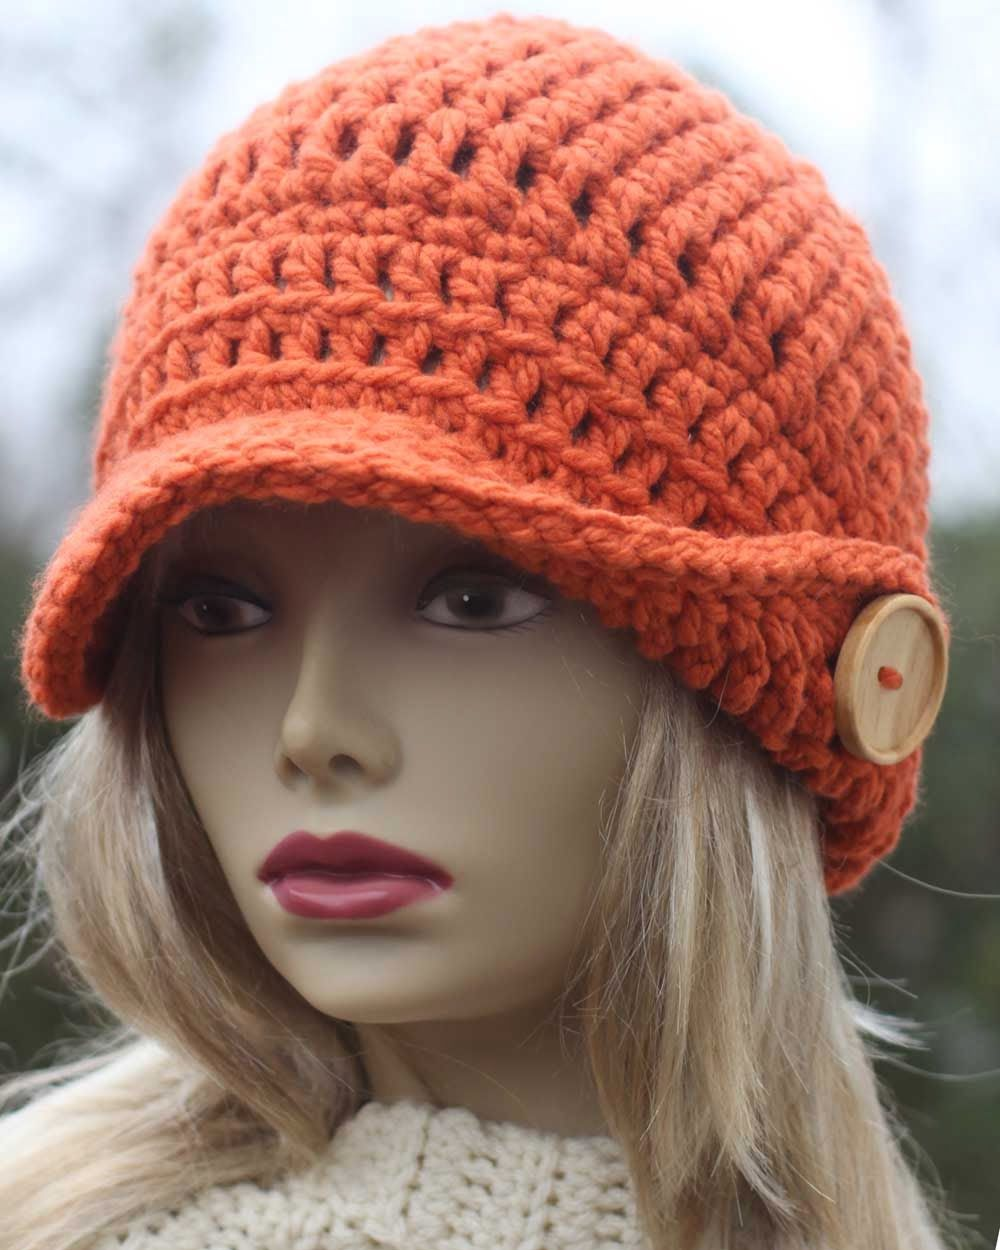 Lady Winged Brim Newsboy Hat | Crochet | Pinterest | Handschuhe ...